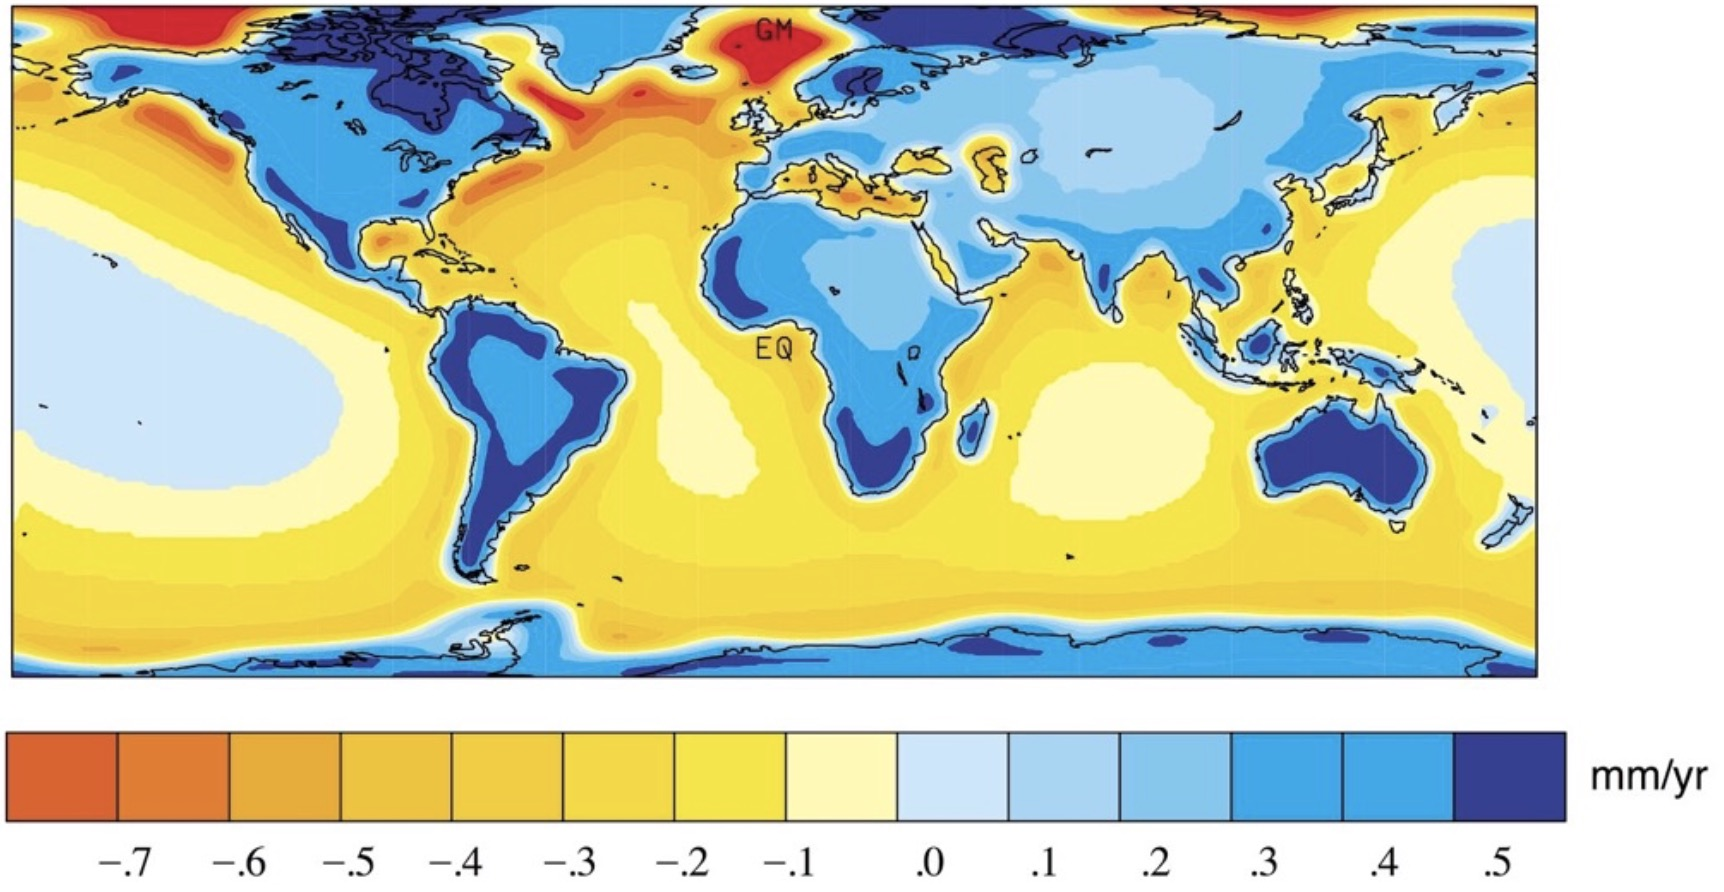 Figure 1. Prediction of present day vertical land motion due to the ongoing response of the Earth to past melting of the large ice sheets that were present during the last glacial maximum (Milne and Mitrovica, 2002). In the absence of other forms of land motion, areas in blue are experiencing uplift, while regions in yellow and red are subsiding.